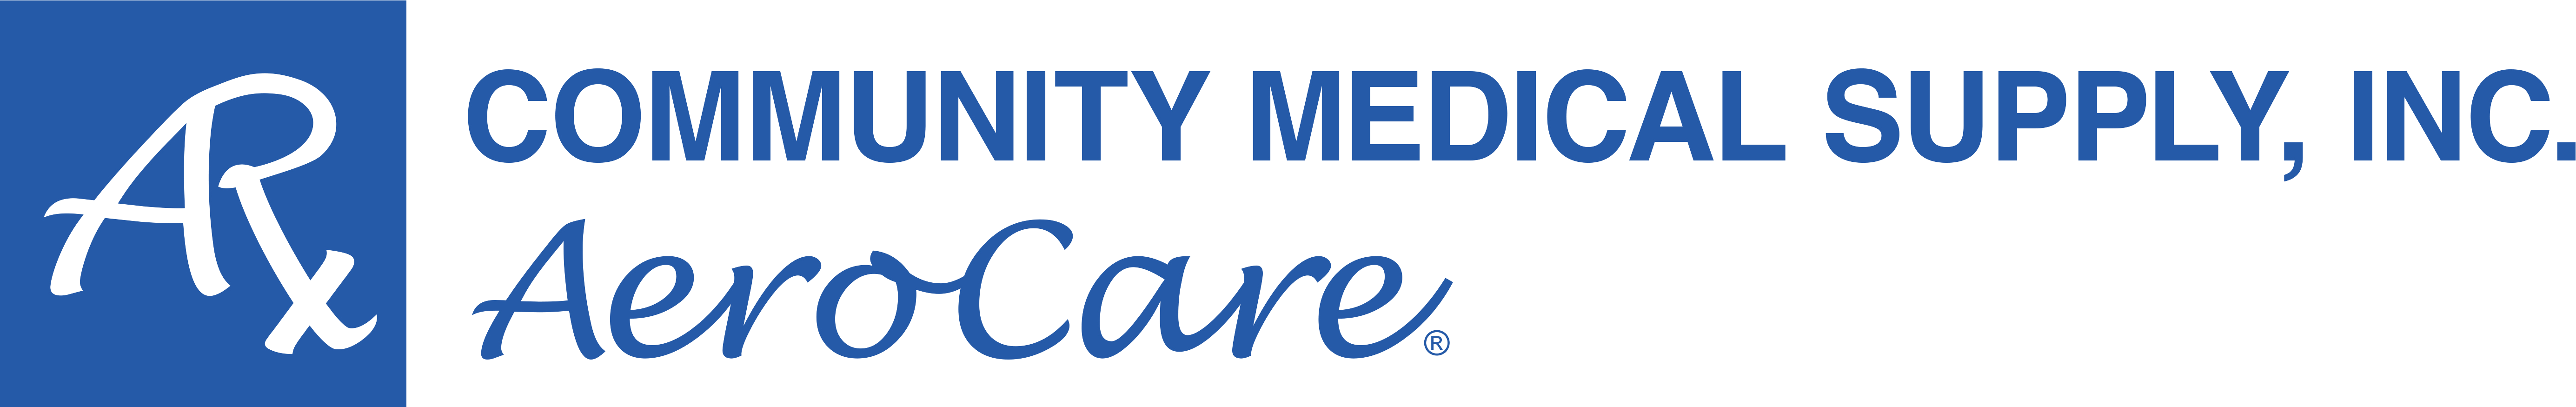 Community Medical Supply, Inc logo